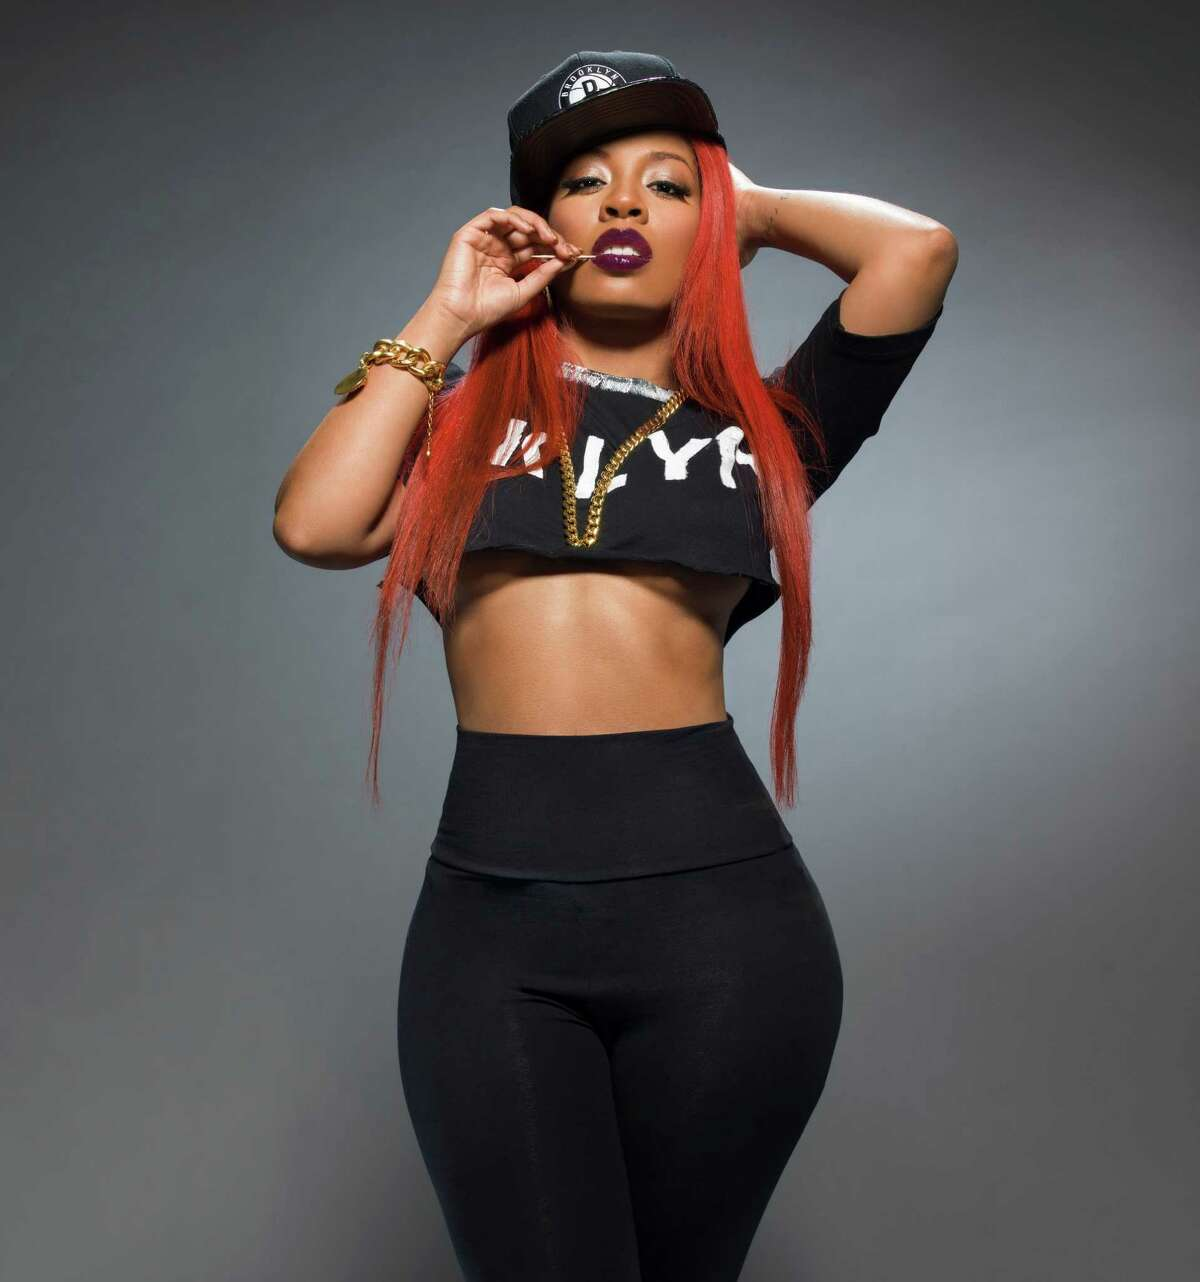 Concert: K. Michelle will perform at 7:30 p.m. Friday at the Beaumont Civic Center, 701 Main Street. Tickets $20 to $70. Special appearances by K-Ci and Jo Jo, and Tank.